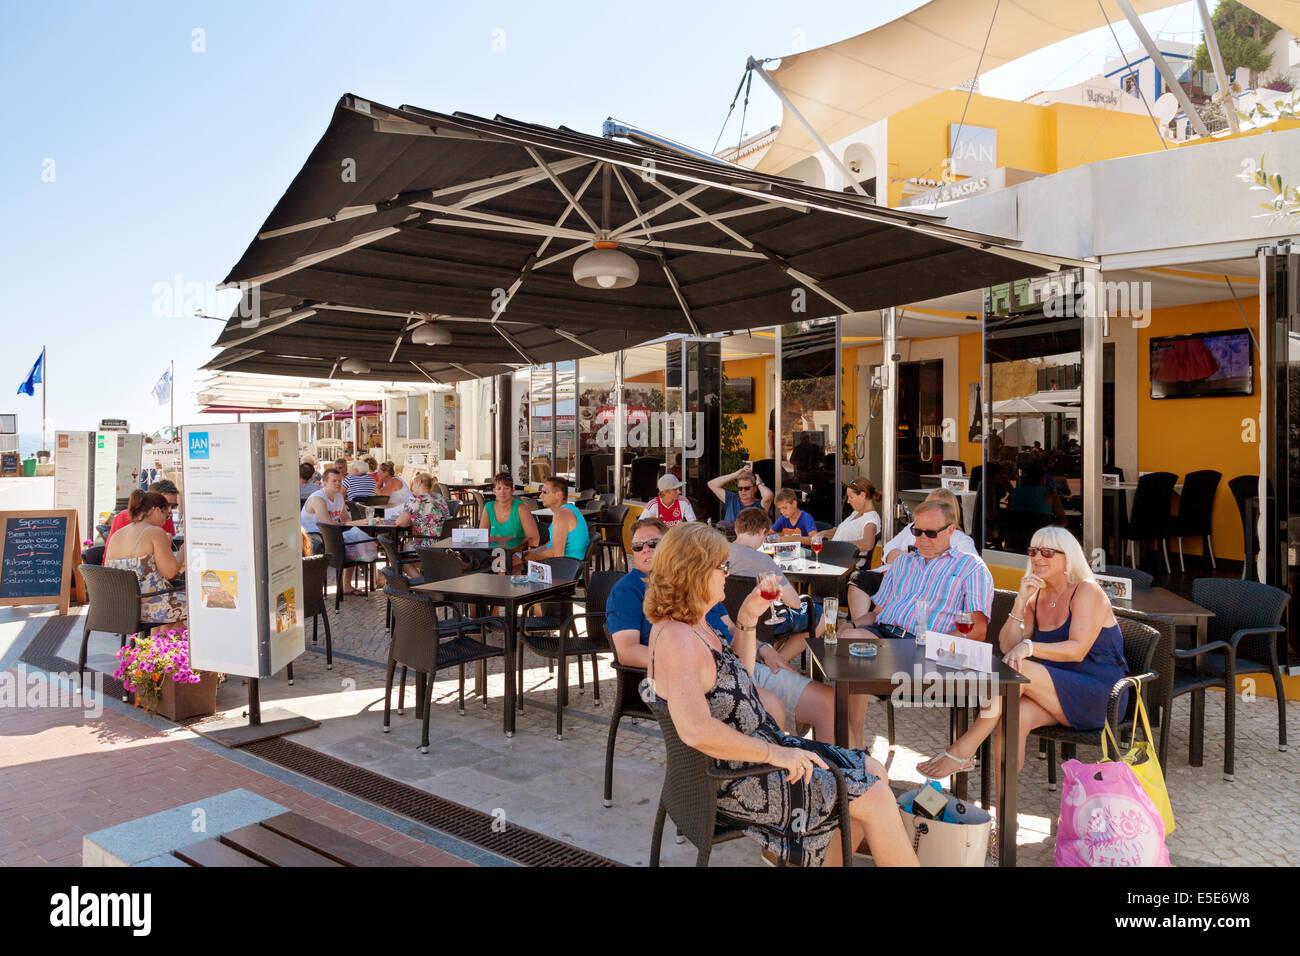 People on summer holiday drinking at a street cafe, Carvoeiro, Algarve Portugal, Europe Stock Photo